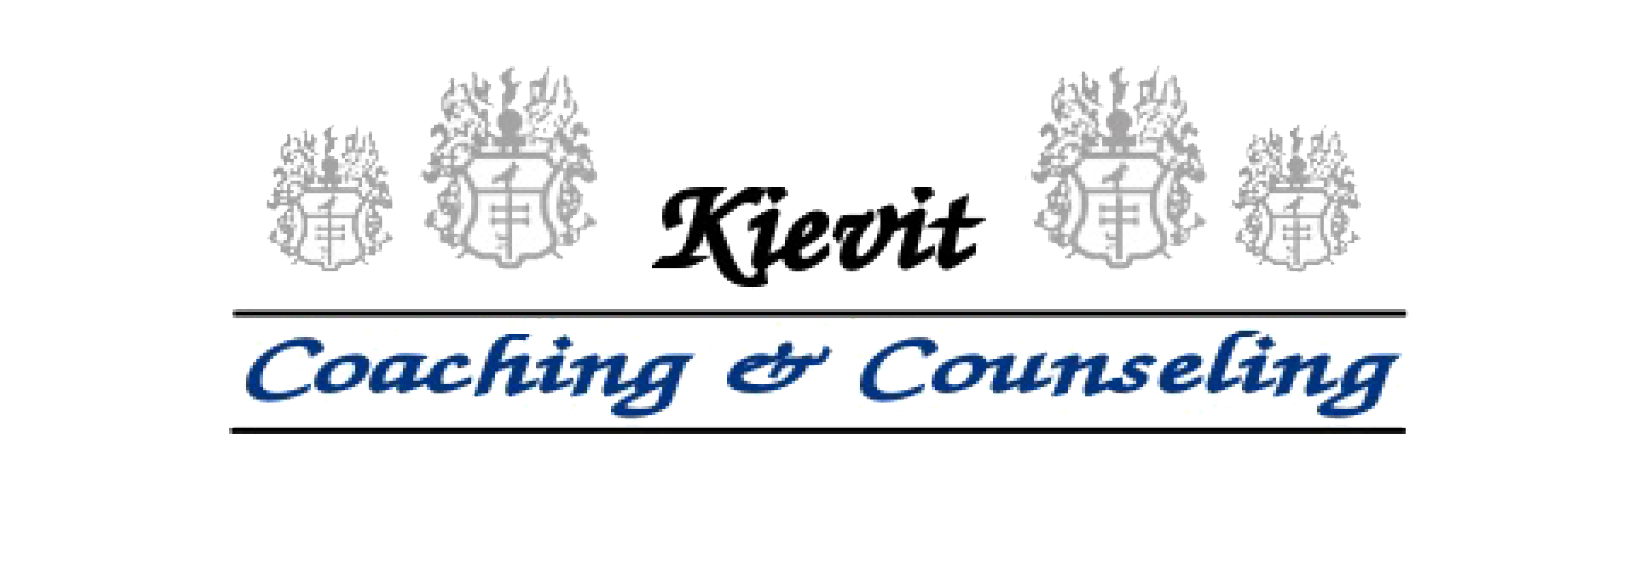 Kievit Coaching en Counseling